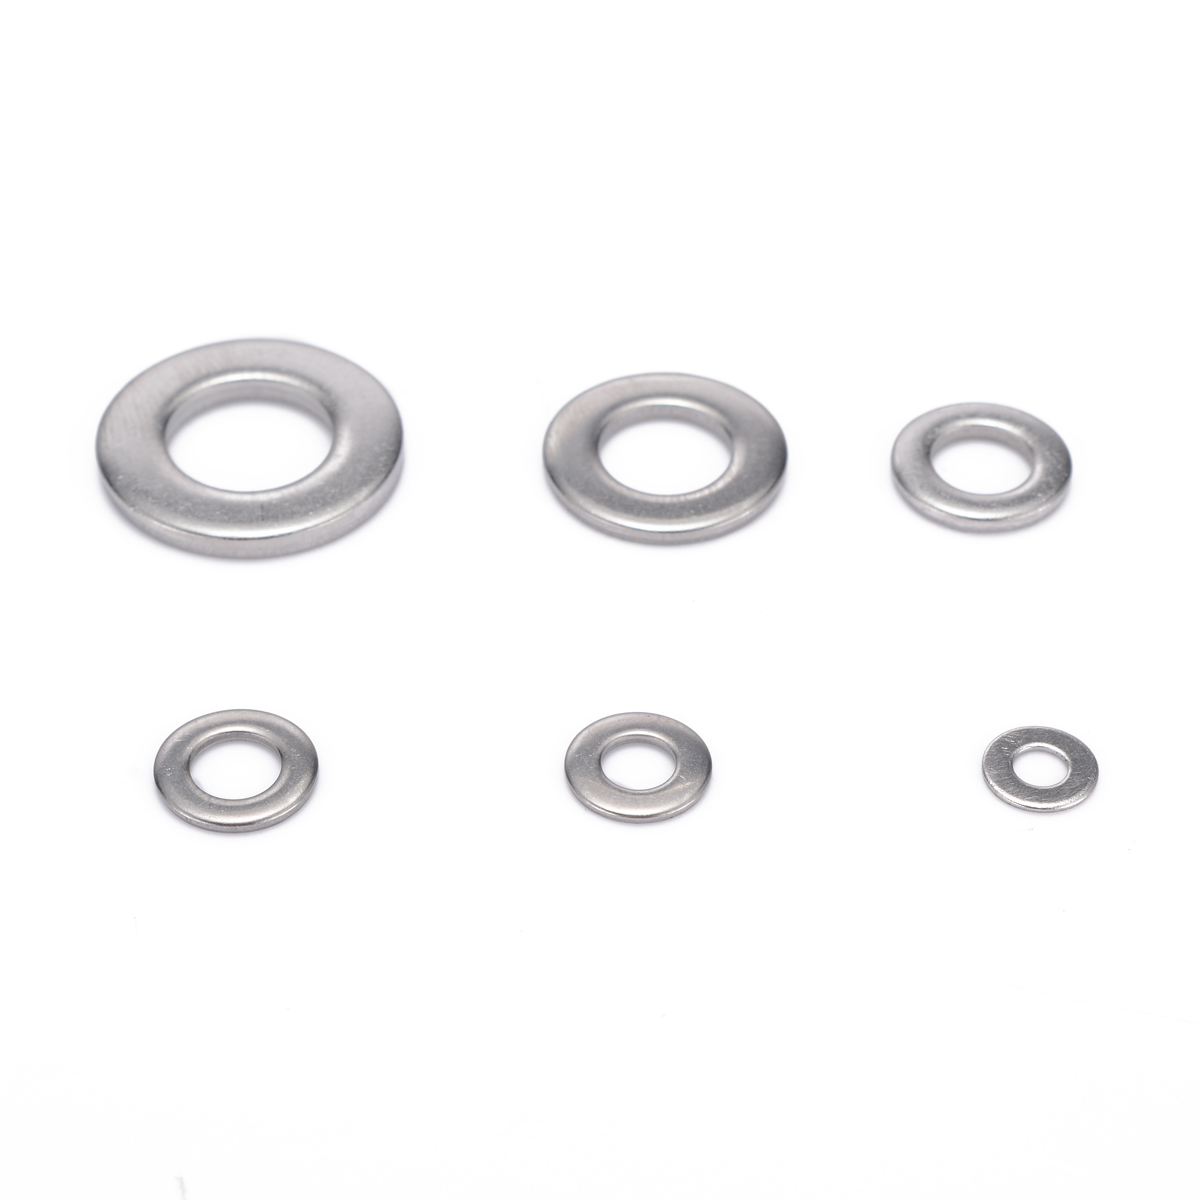 105pcs/set 304 Stainless Steel Washers M3 M4 M5 M6 M8 M10 For Precision Machinery Repairing Metric Flat Washer Kit